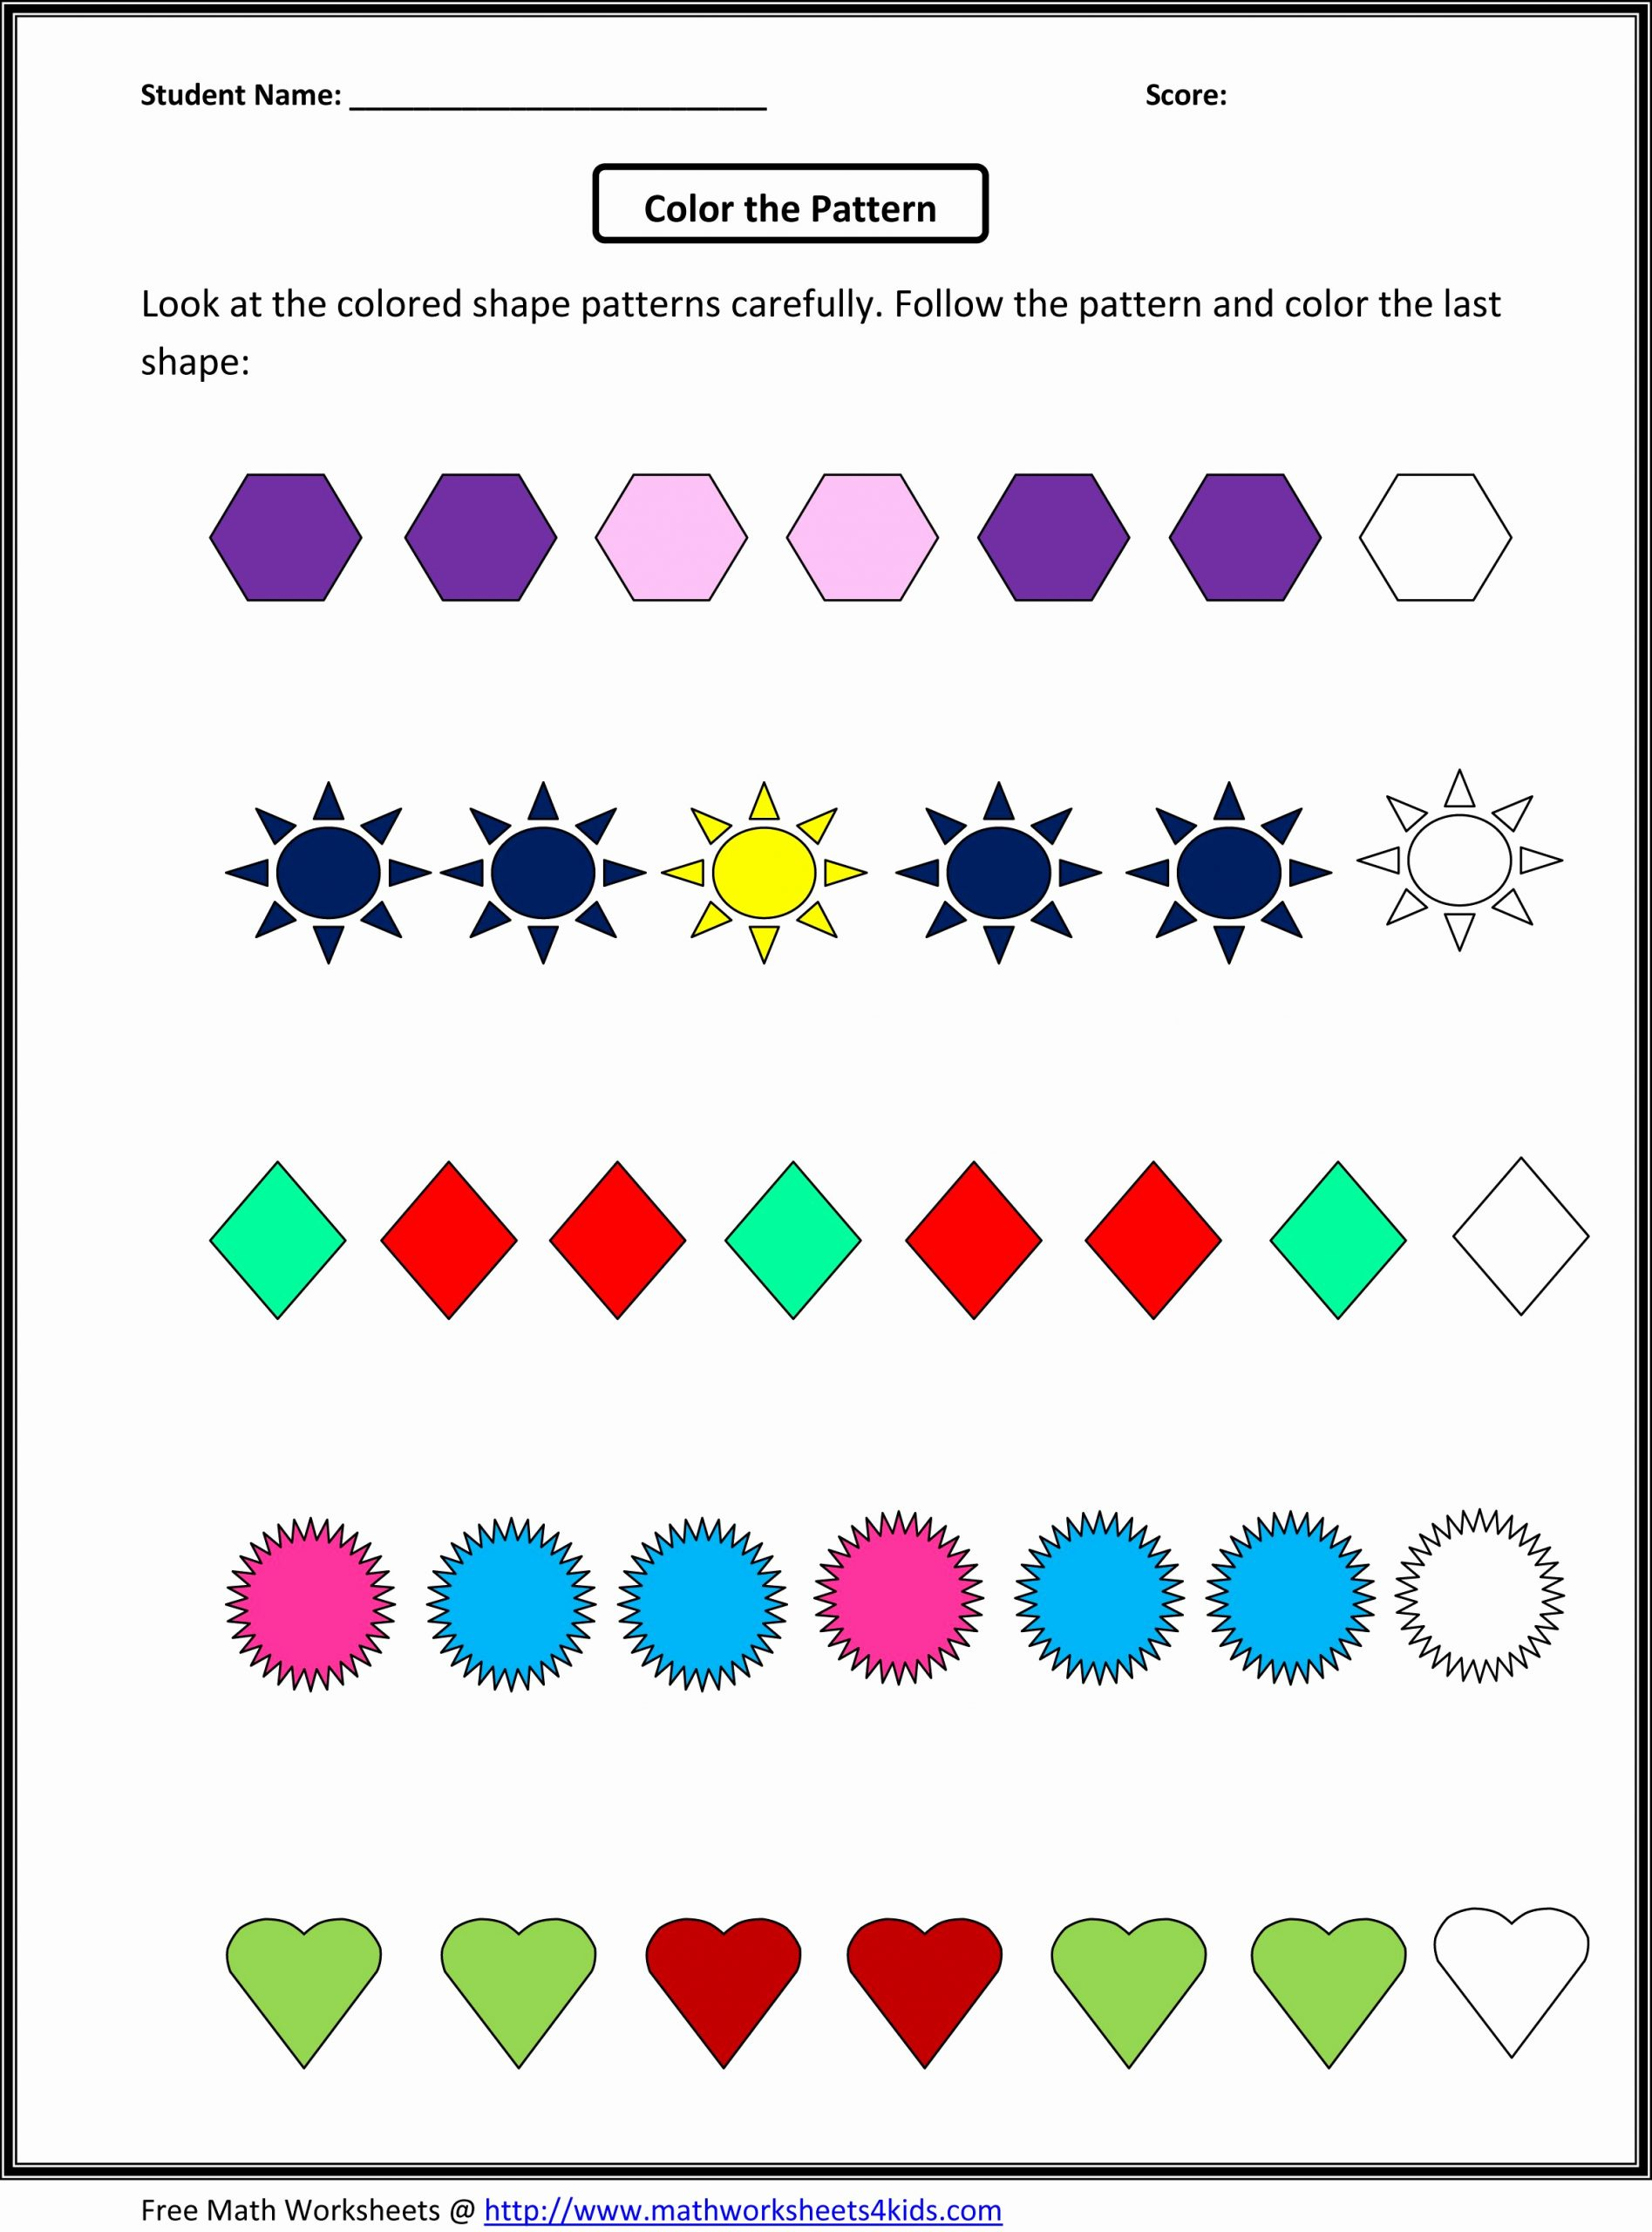 Geometric Shapes Patterns Worksheets New Perimeter Of Irregular Shapes